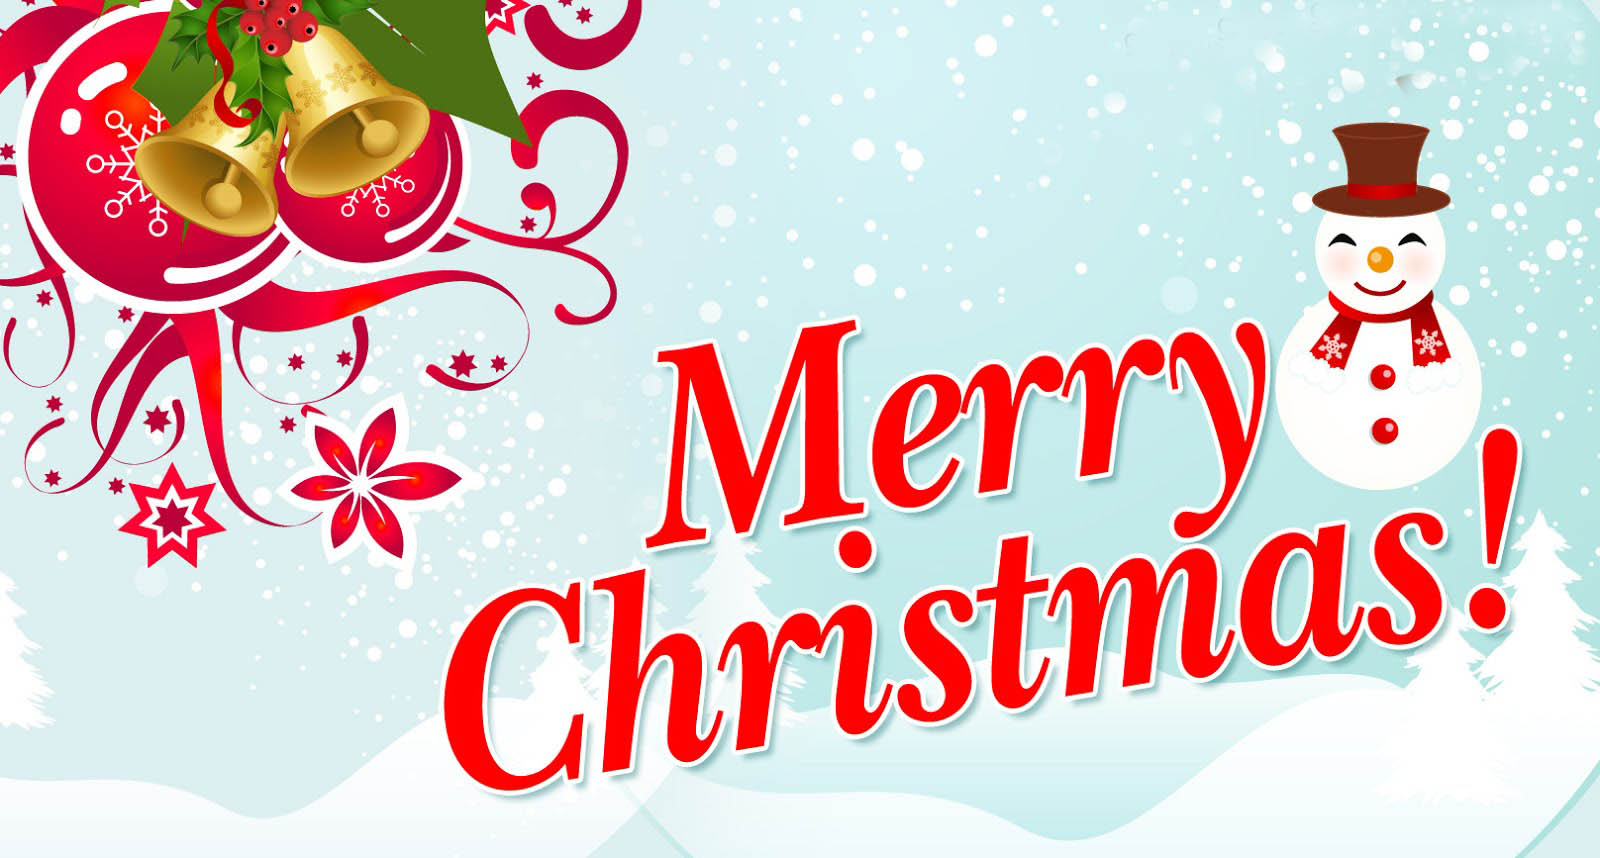 Unique merry christmas wishes messages greetings 2017 all update merry christmas wishes m4hsunfo